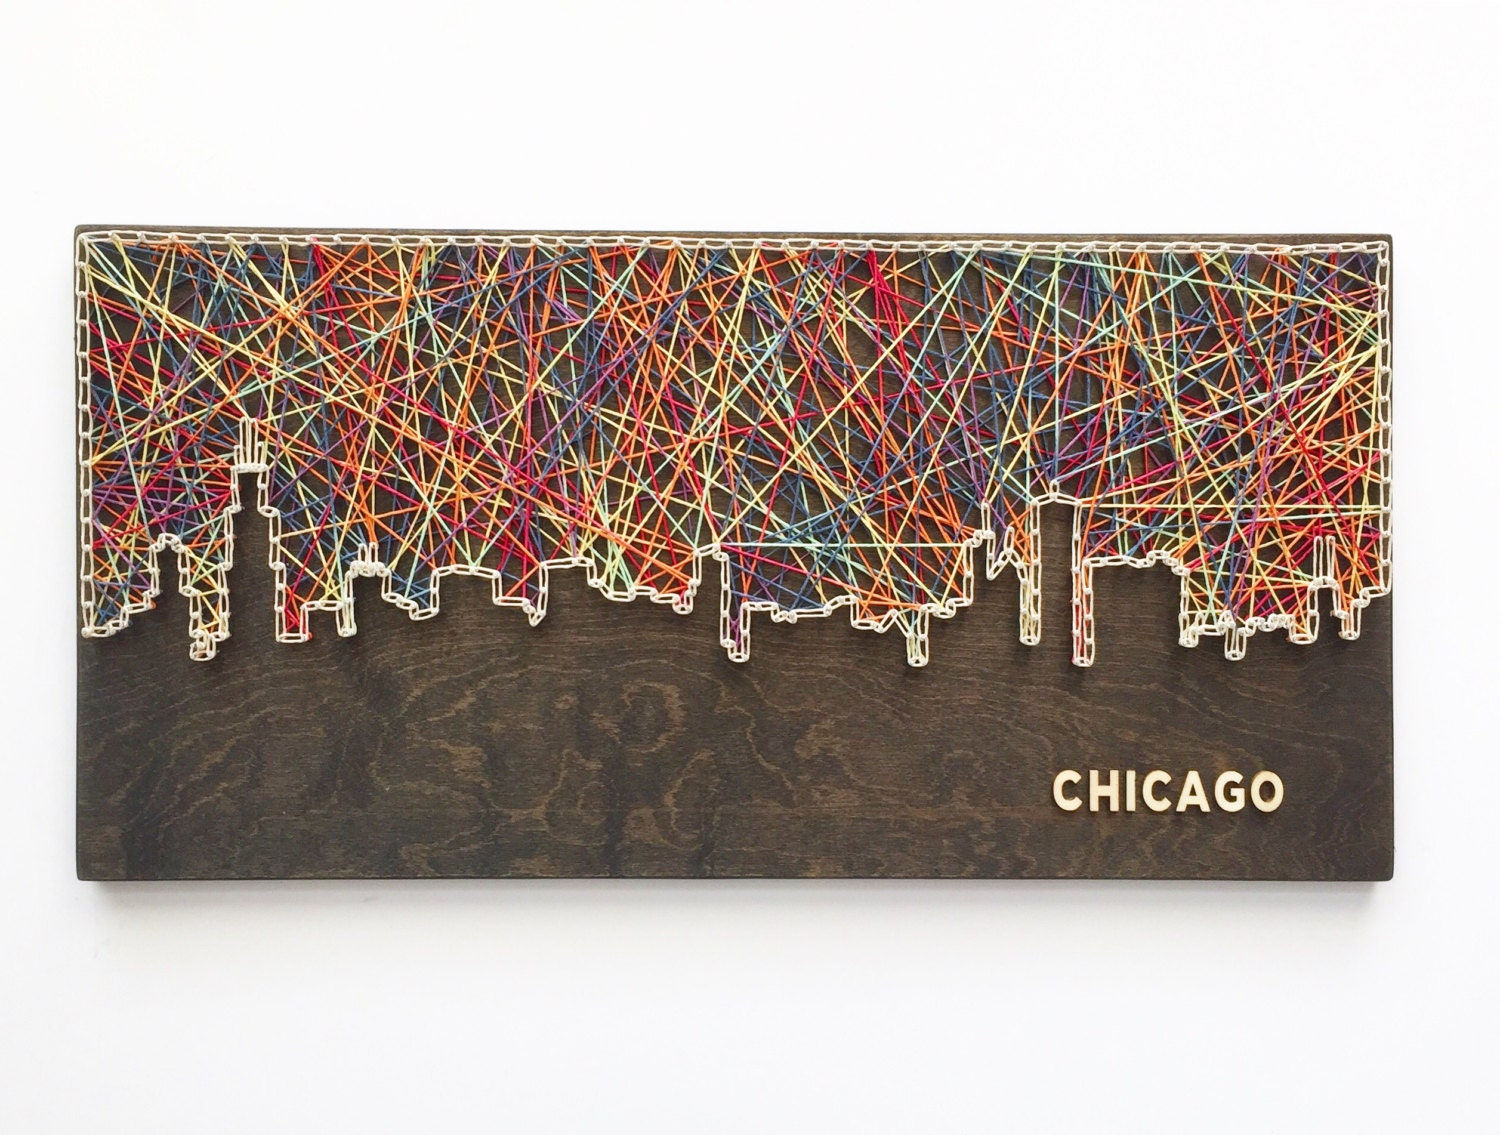 Chicago Art Etsy - Chicago map etsy